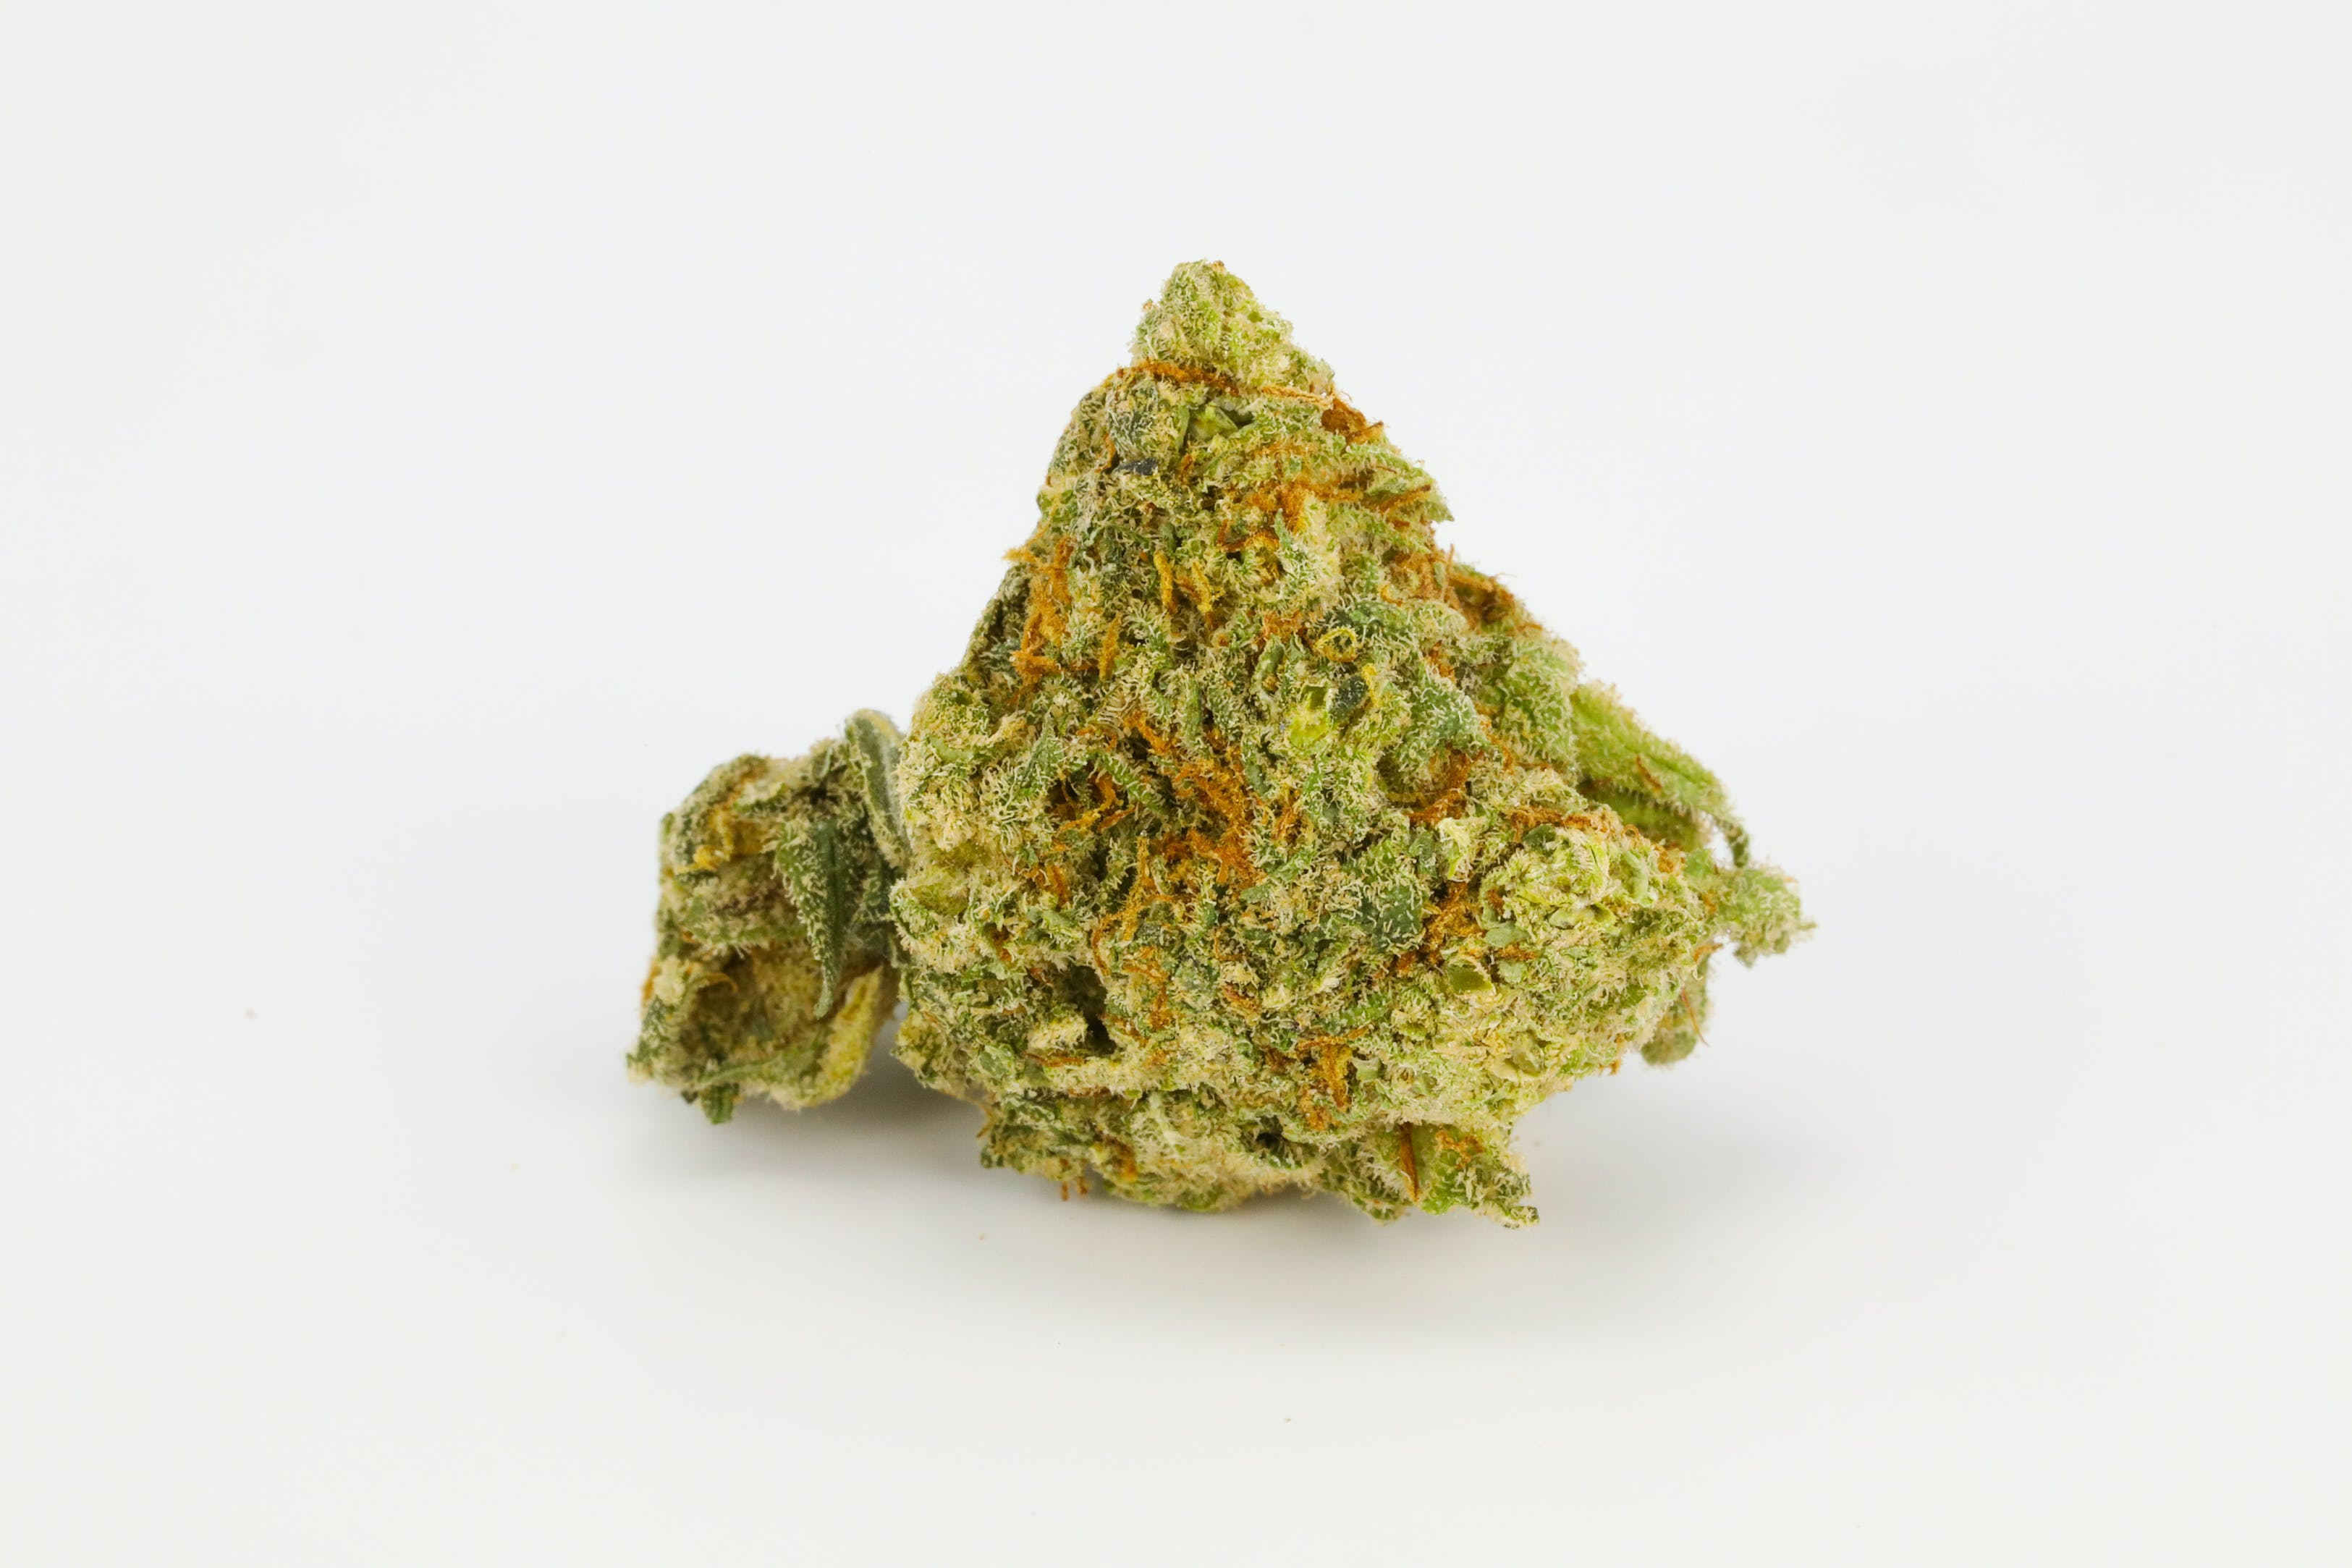 Dr. Who Weed; Dr. Who Cannabis Strain; Dr. Who Hybrid Marijuana Strain